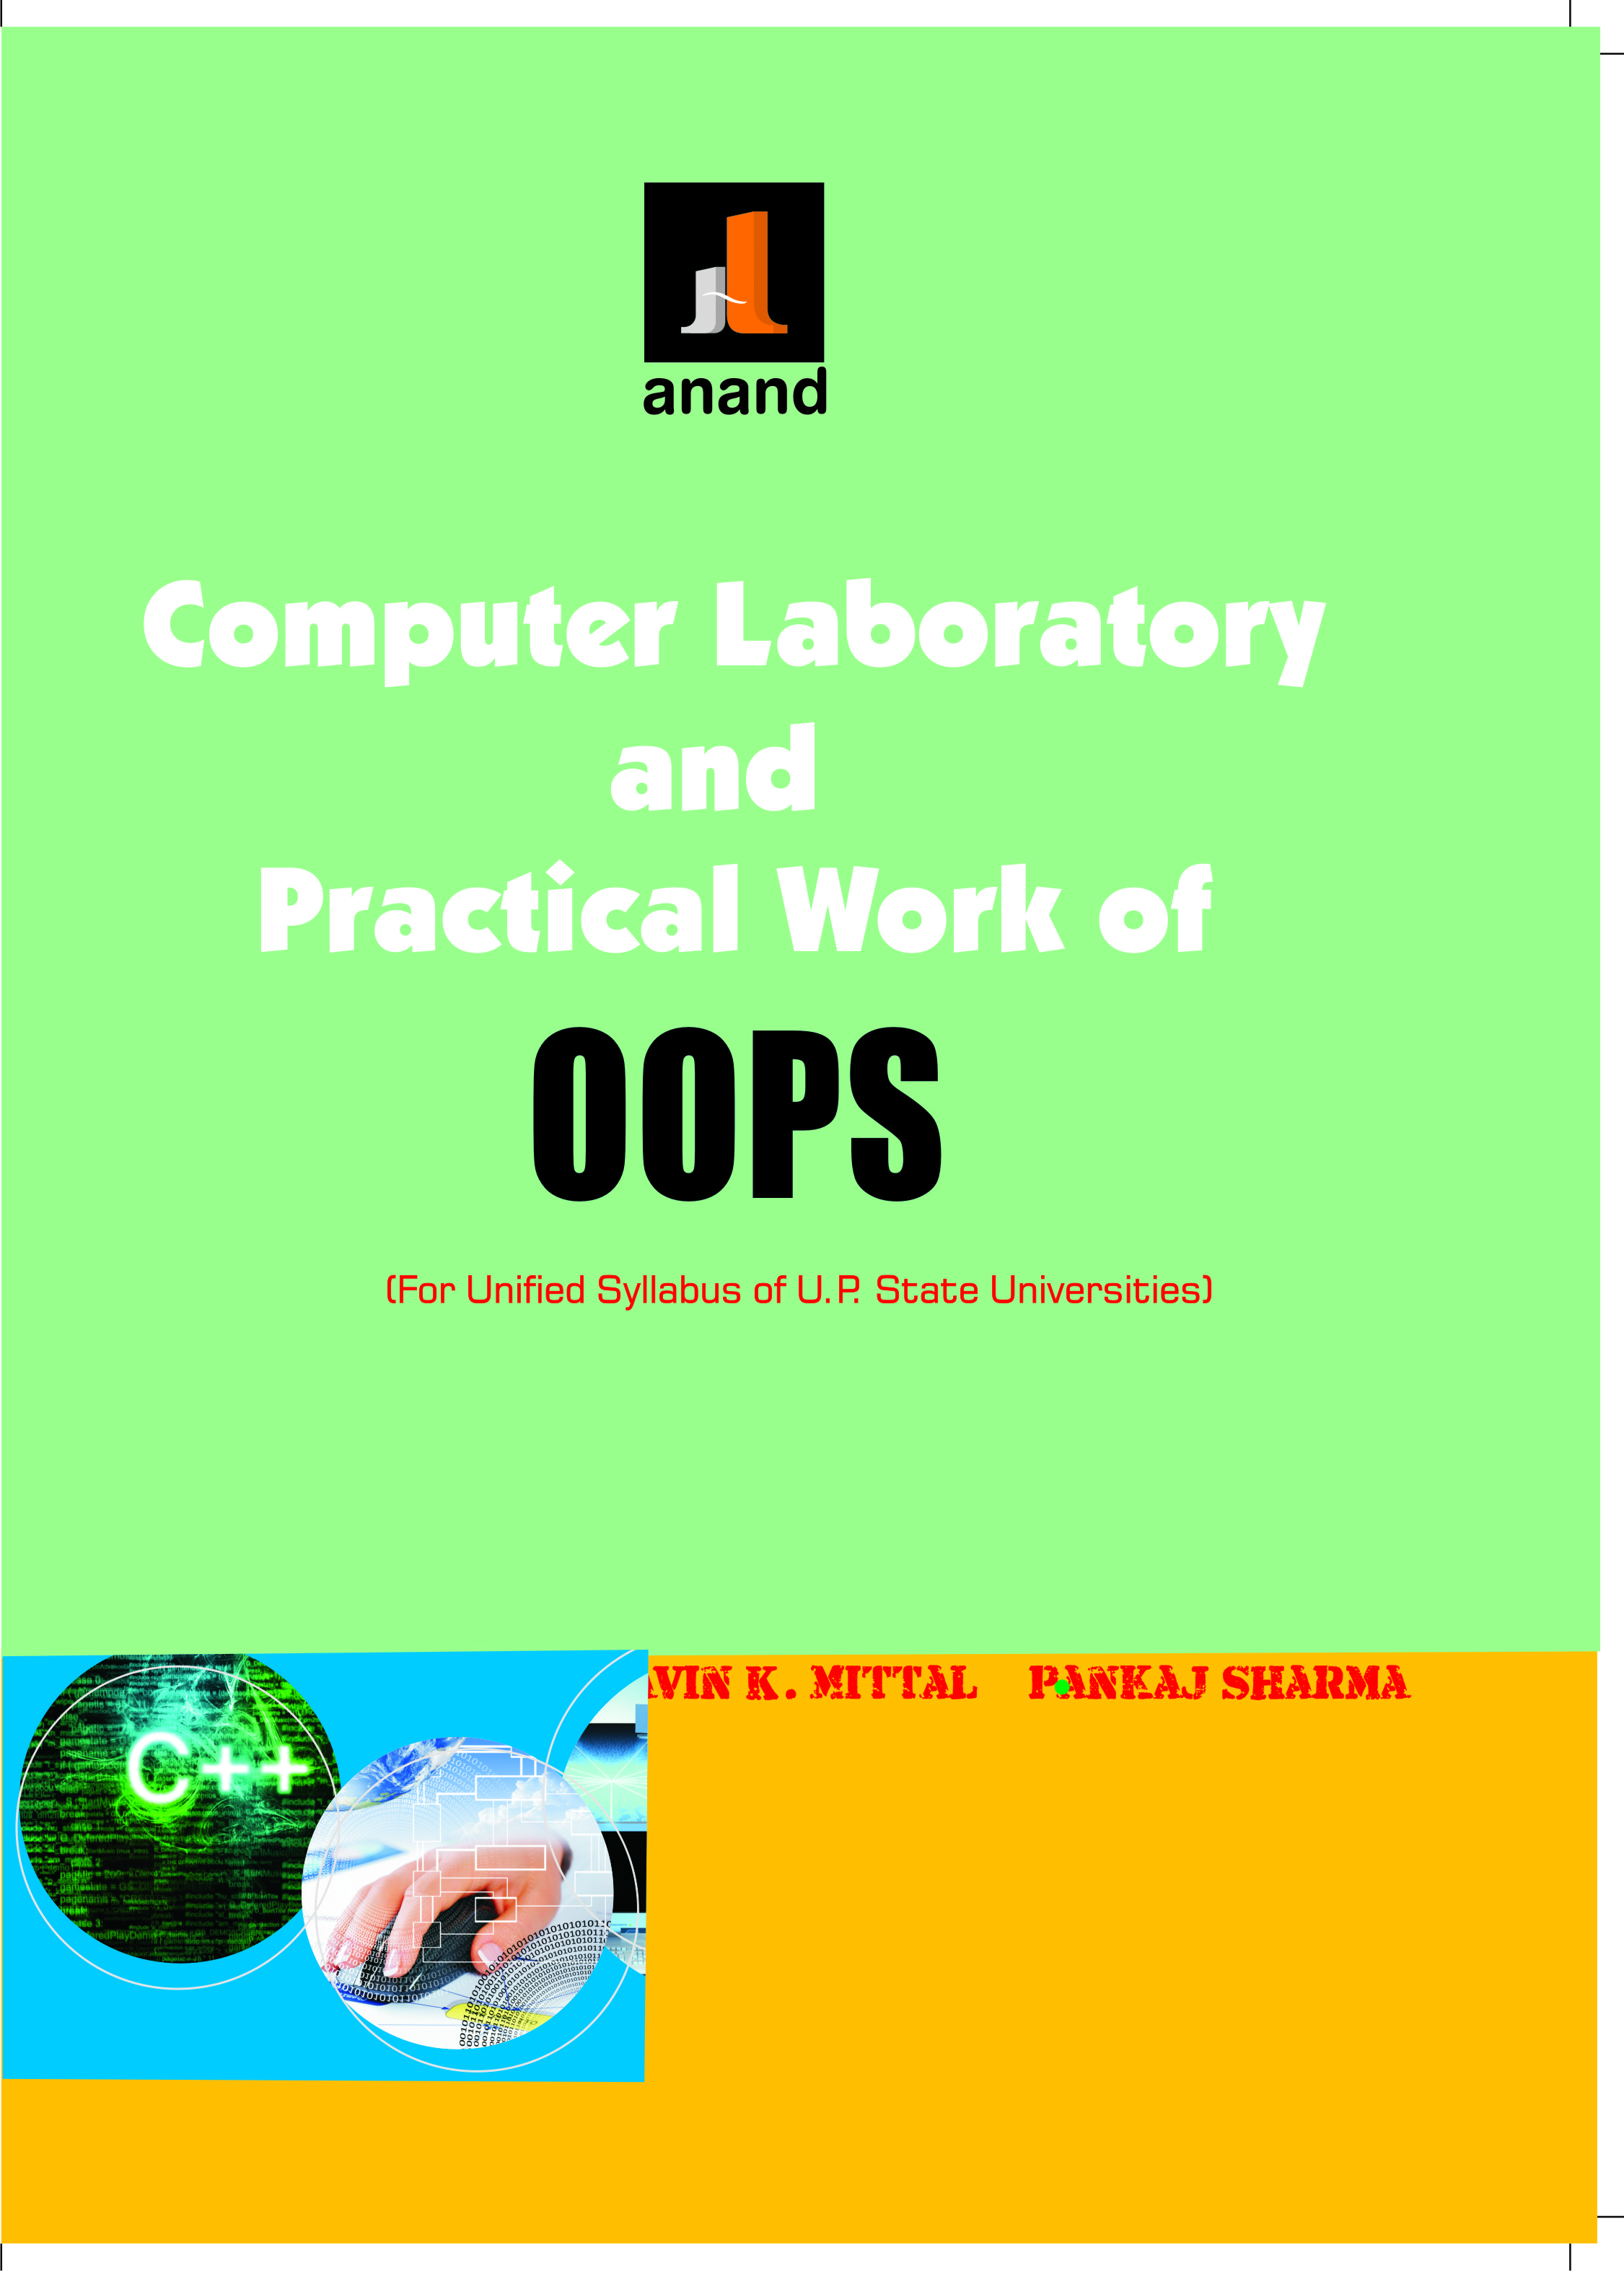 Computer Laboratory and Practicals Works of OOPS